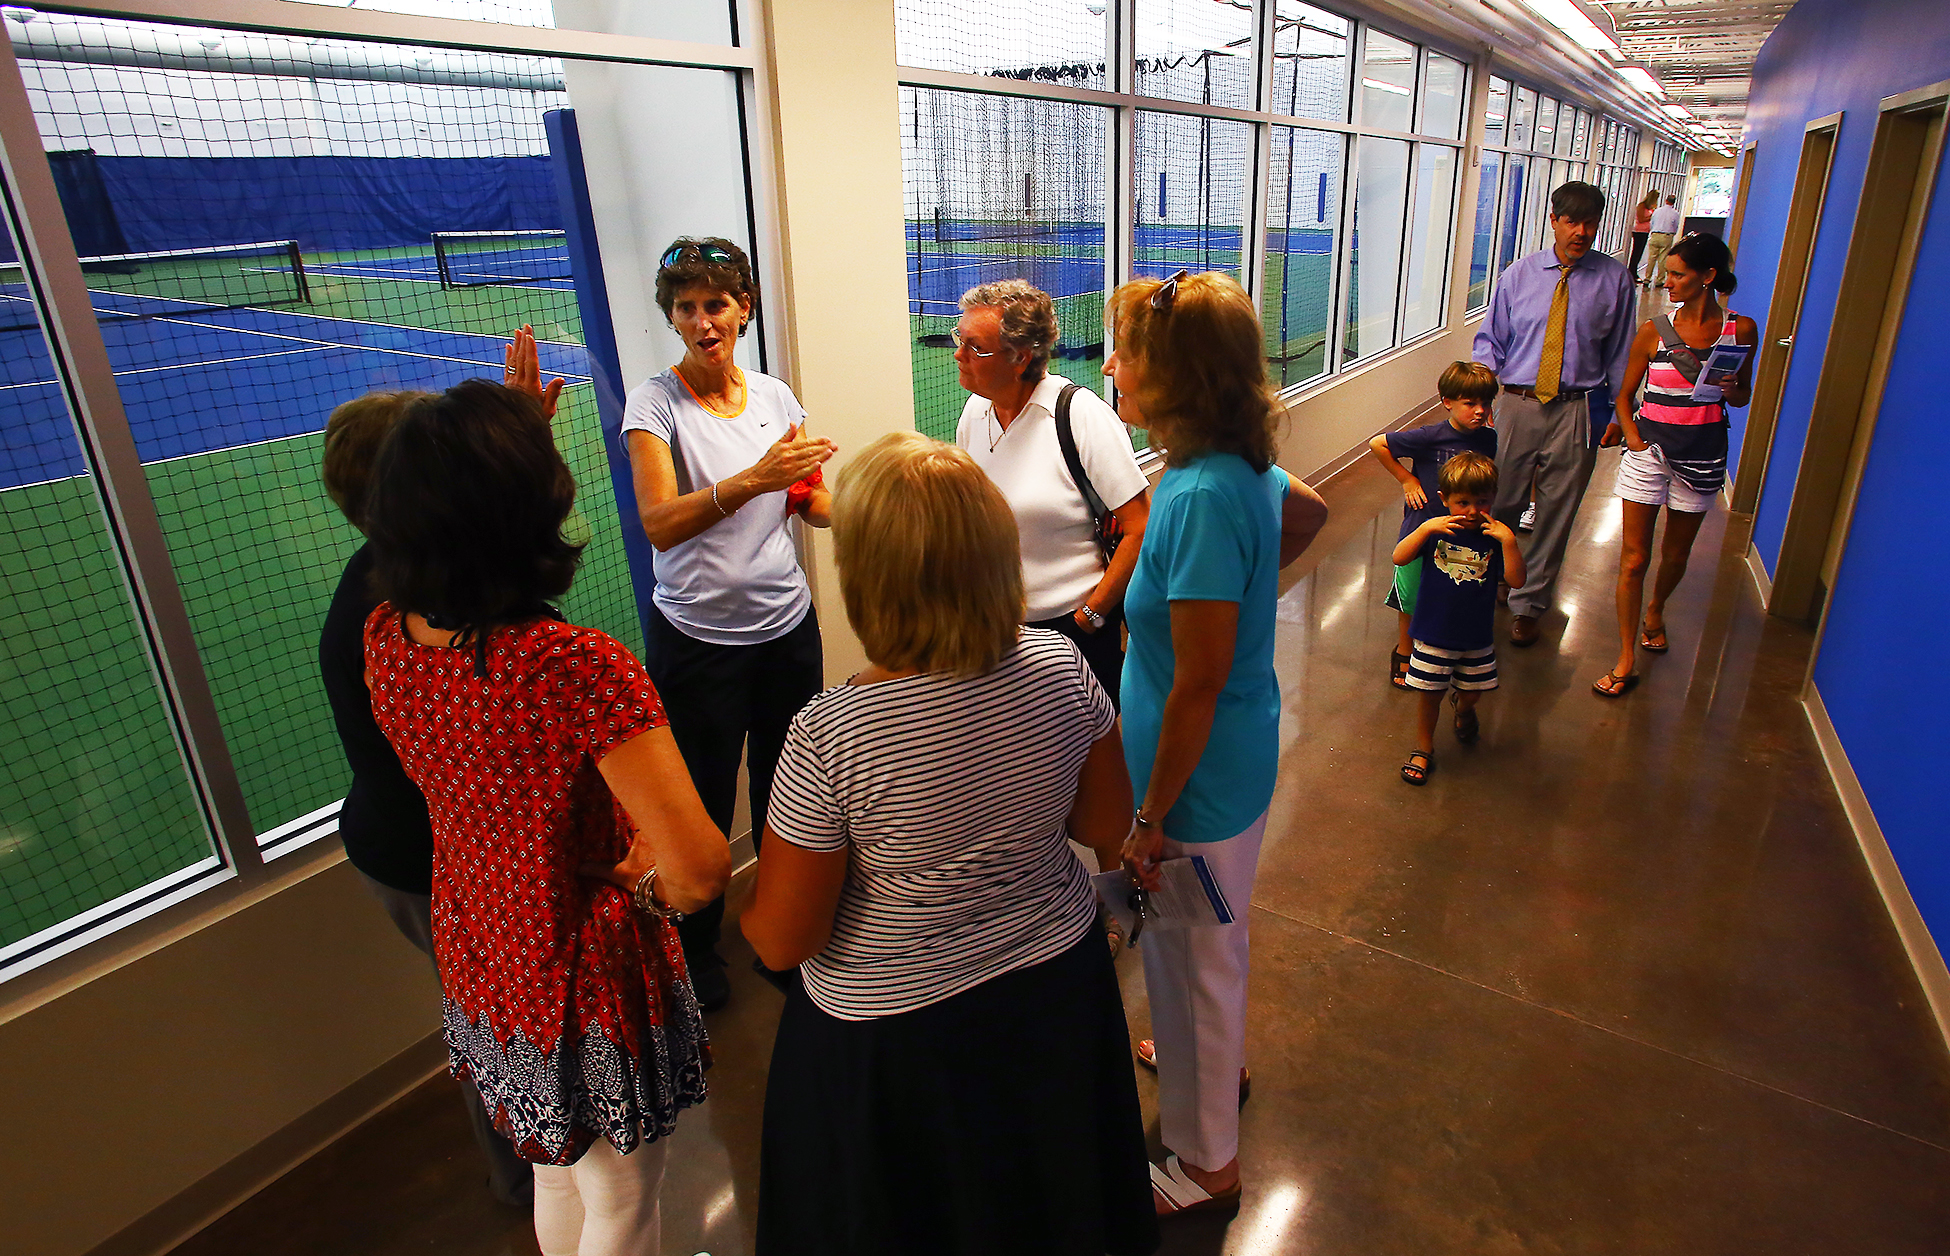 Grand opening of new $5.8 Million indoor tennis facility in Murfreesboro July 15th